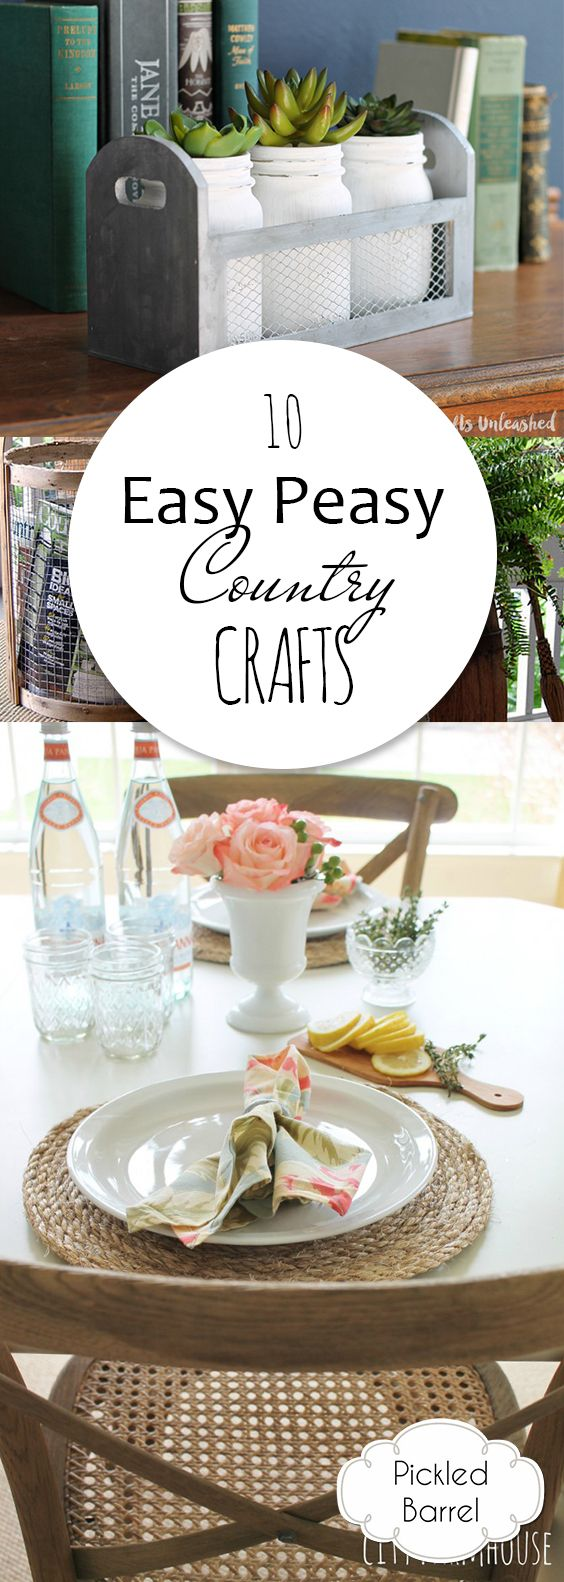 10 easy peasy country crafts country crafts quick crafts and easy